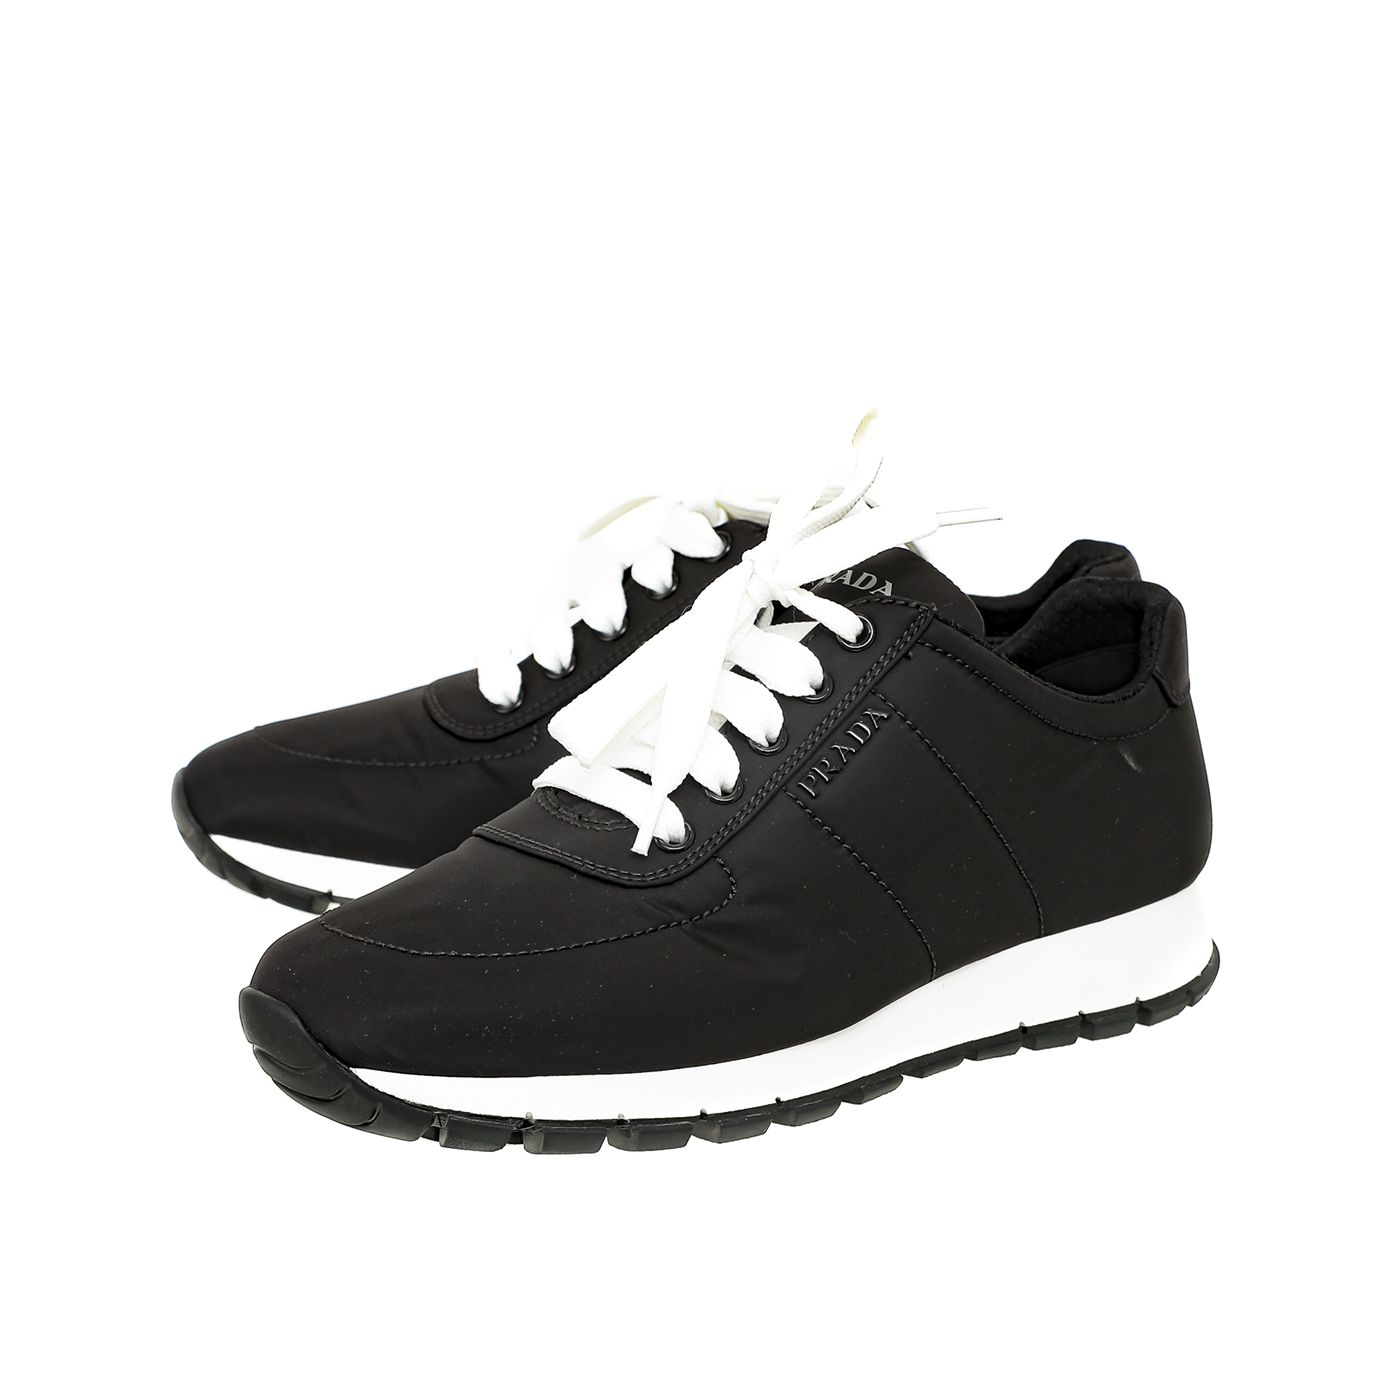 Prada Bicolor Nylon Lace Up Sneakers